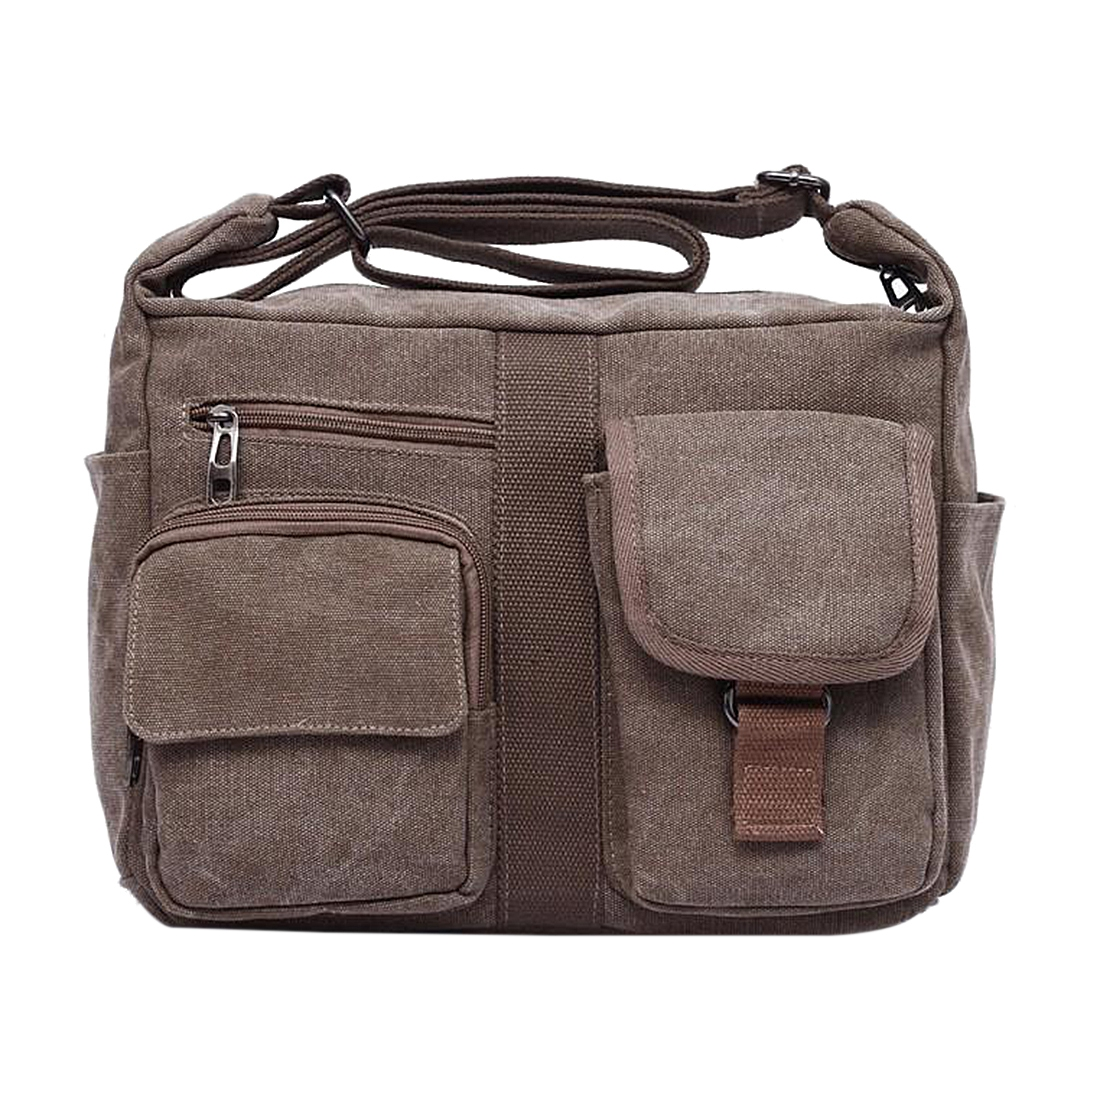 Crossbody Bag Handbag Large Man Vintage Canvas Messenger Bags (Coffee,Khaki,Black,Grey)